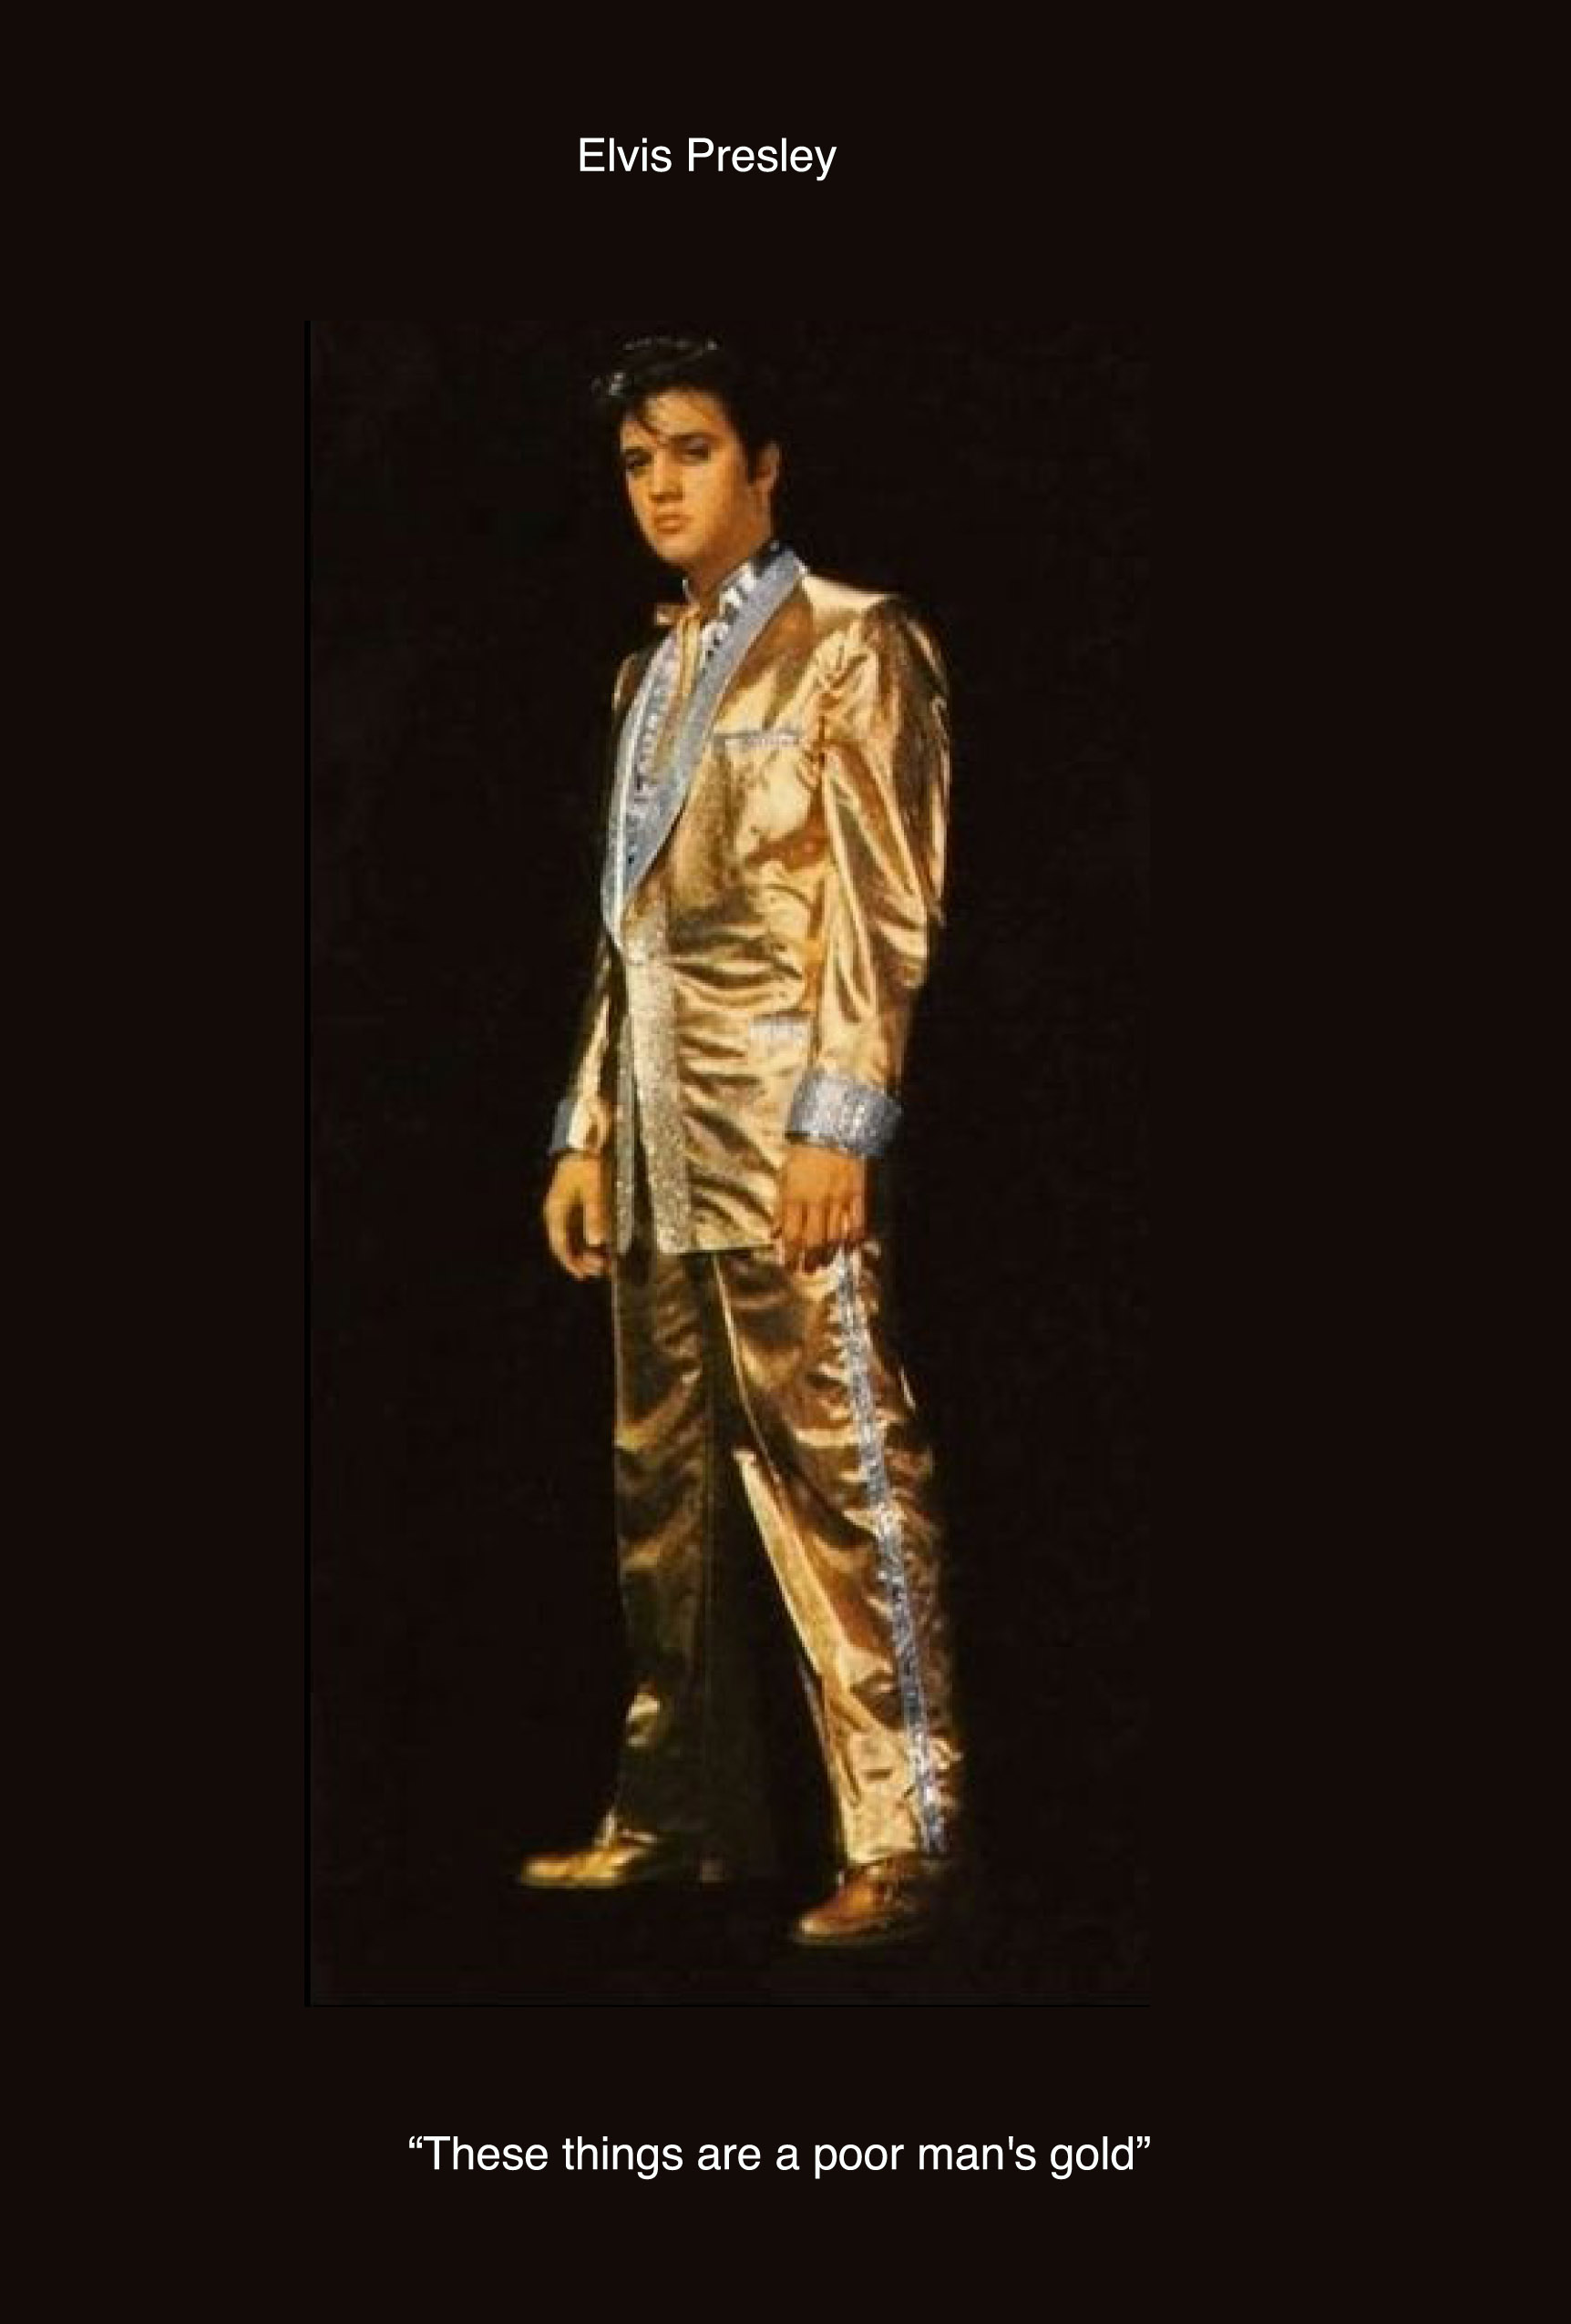 Elvis Presley, Golden suit